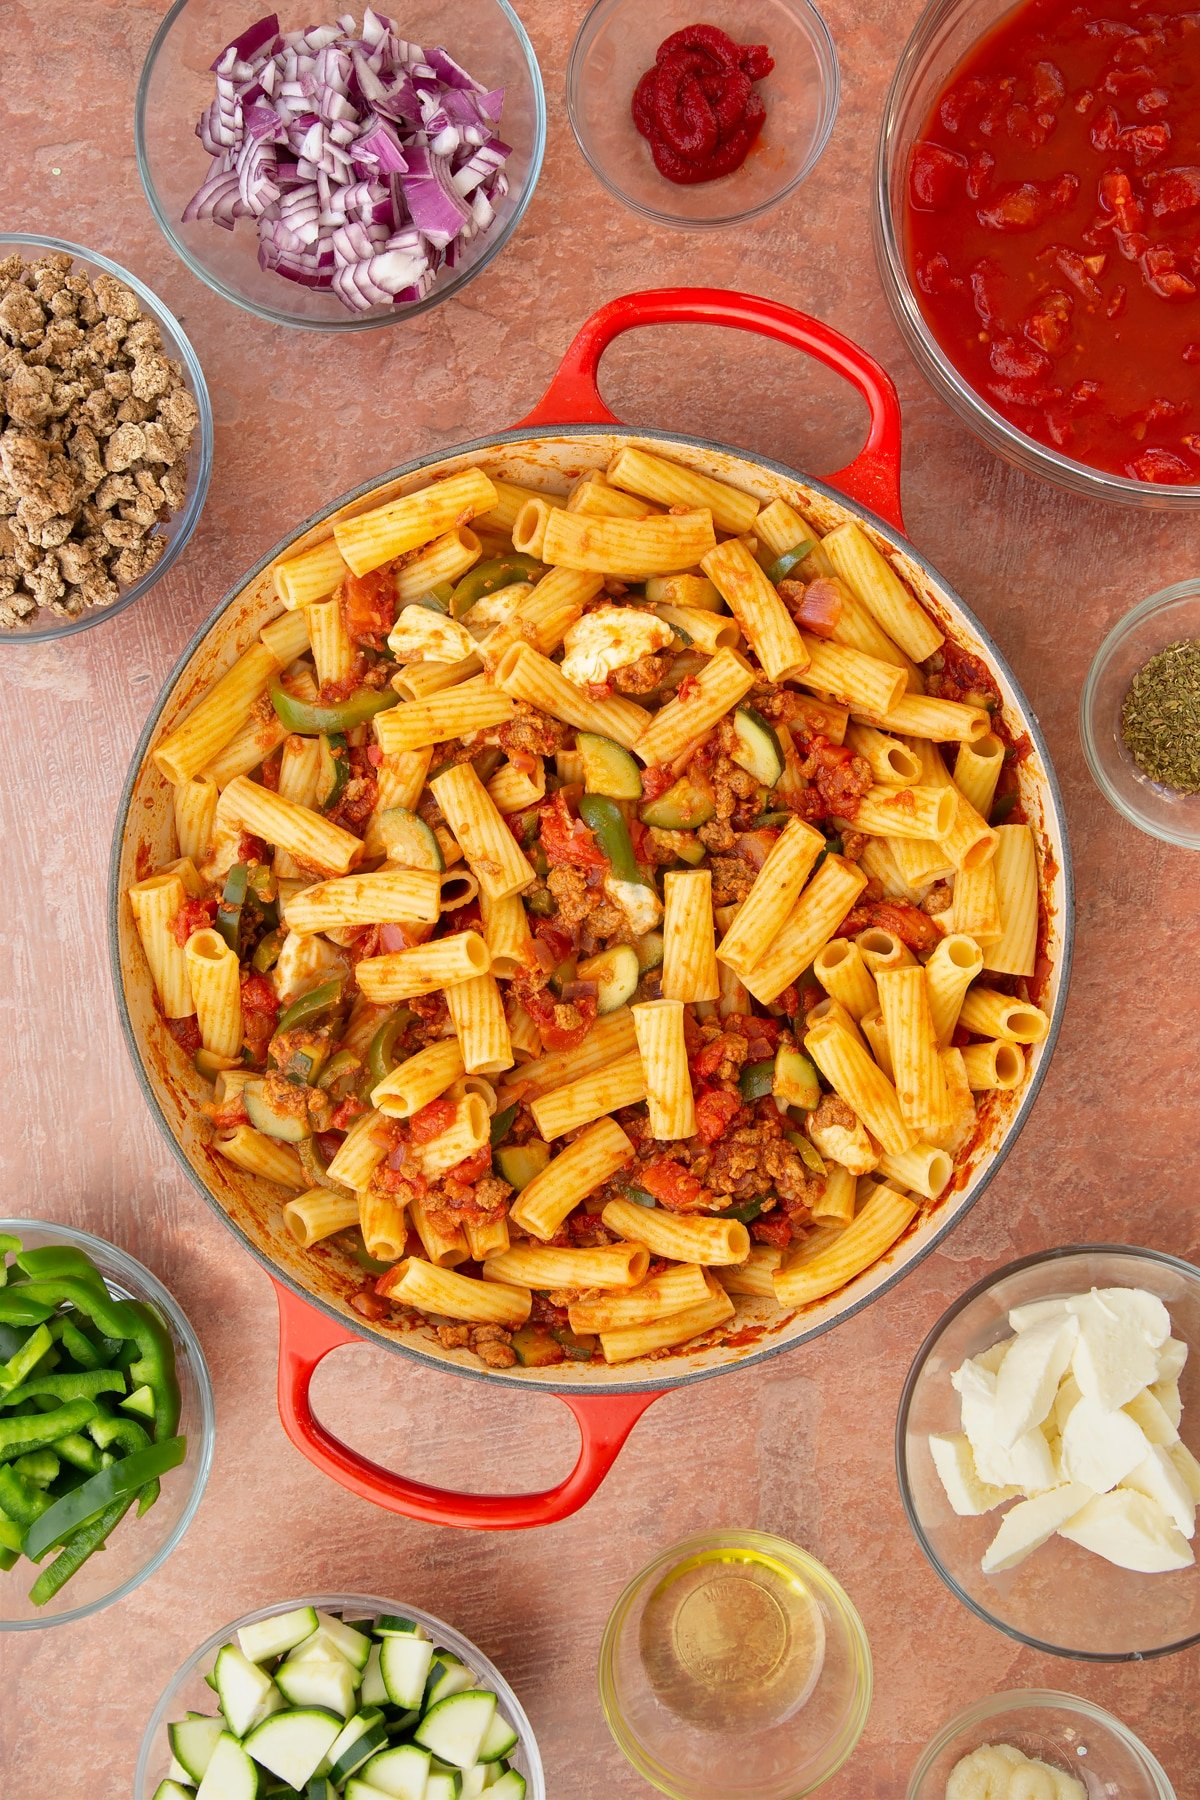 A casserole dish containing a bolognese sauce mixed with cooked pasta and torn mozzarella. Ingredients to make bolognese al forno surround the dish.